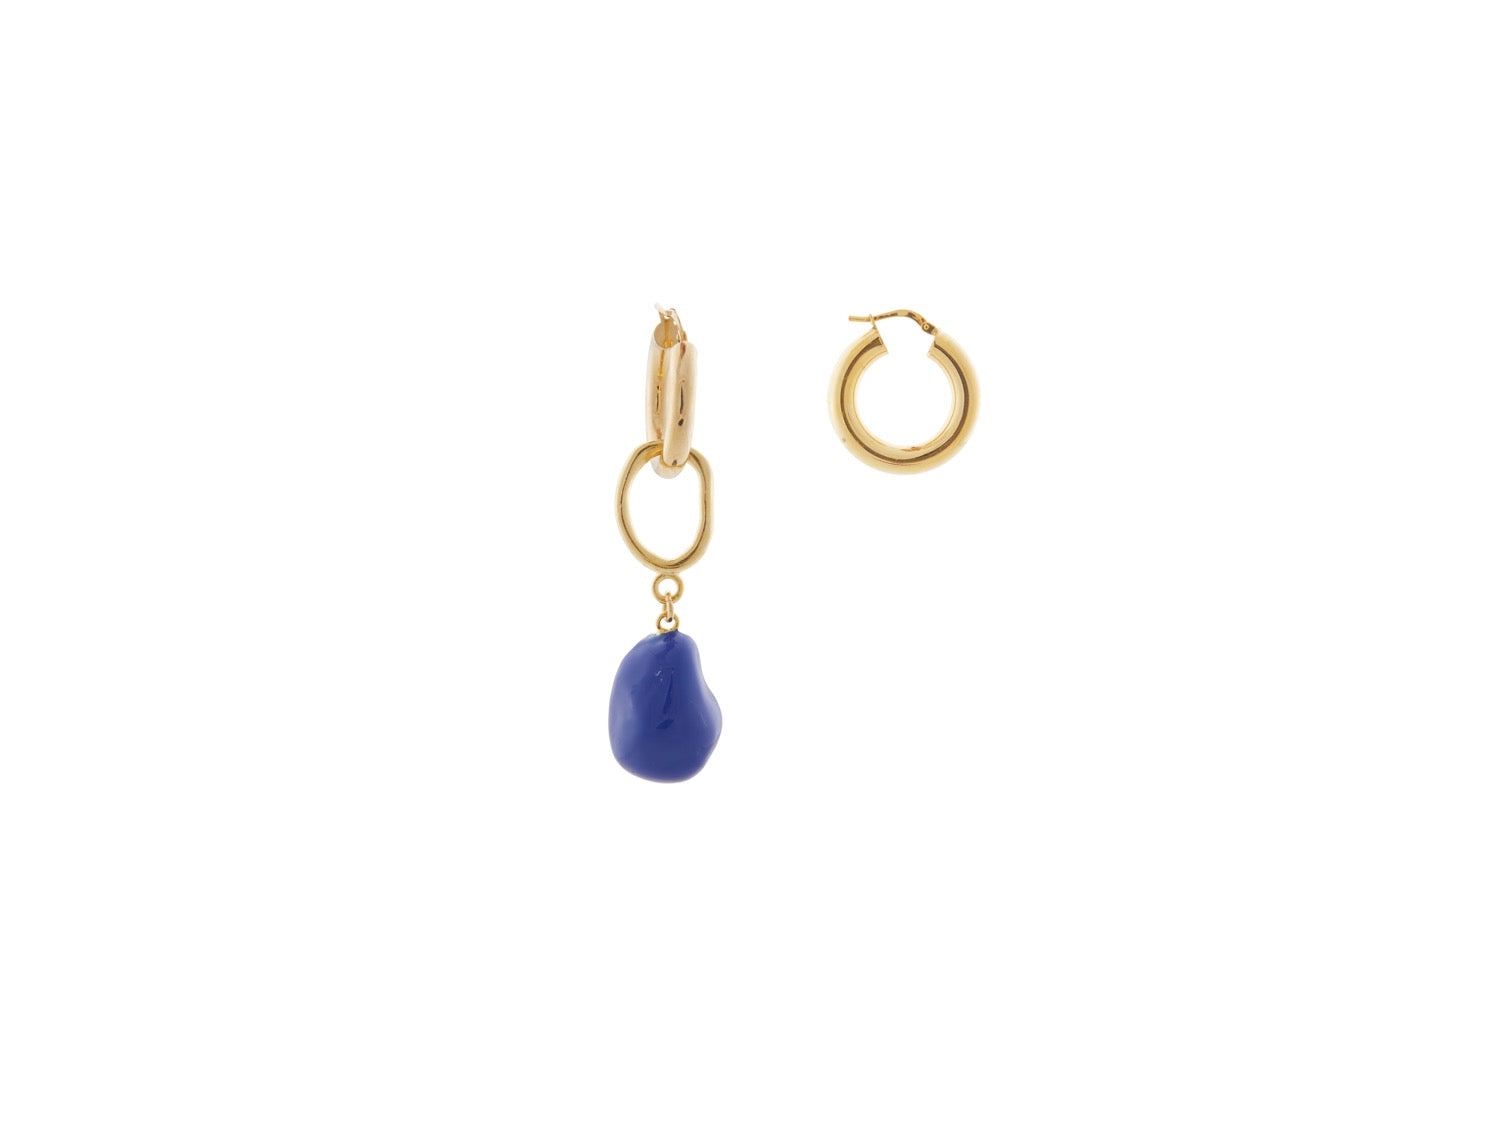 Bolsa Chica Hoop Earrings